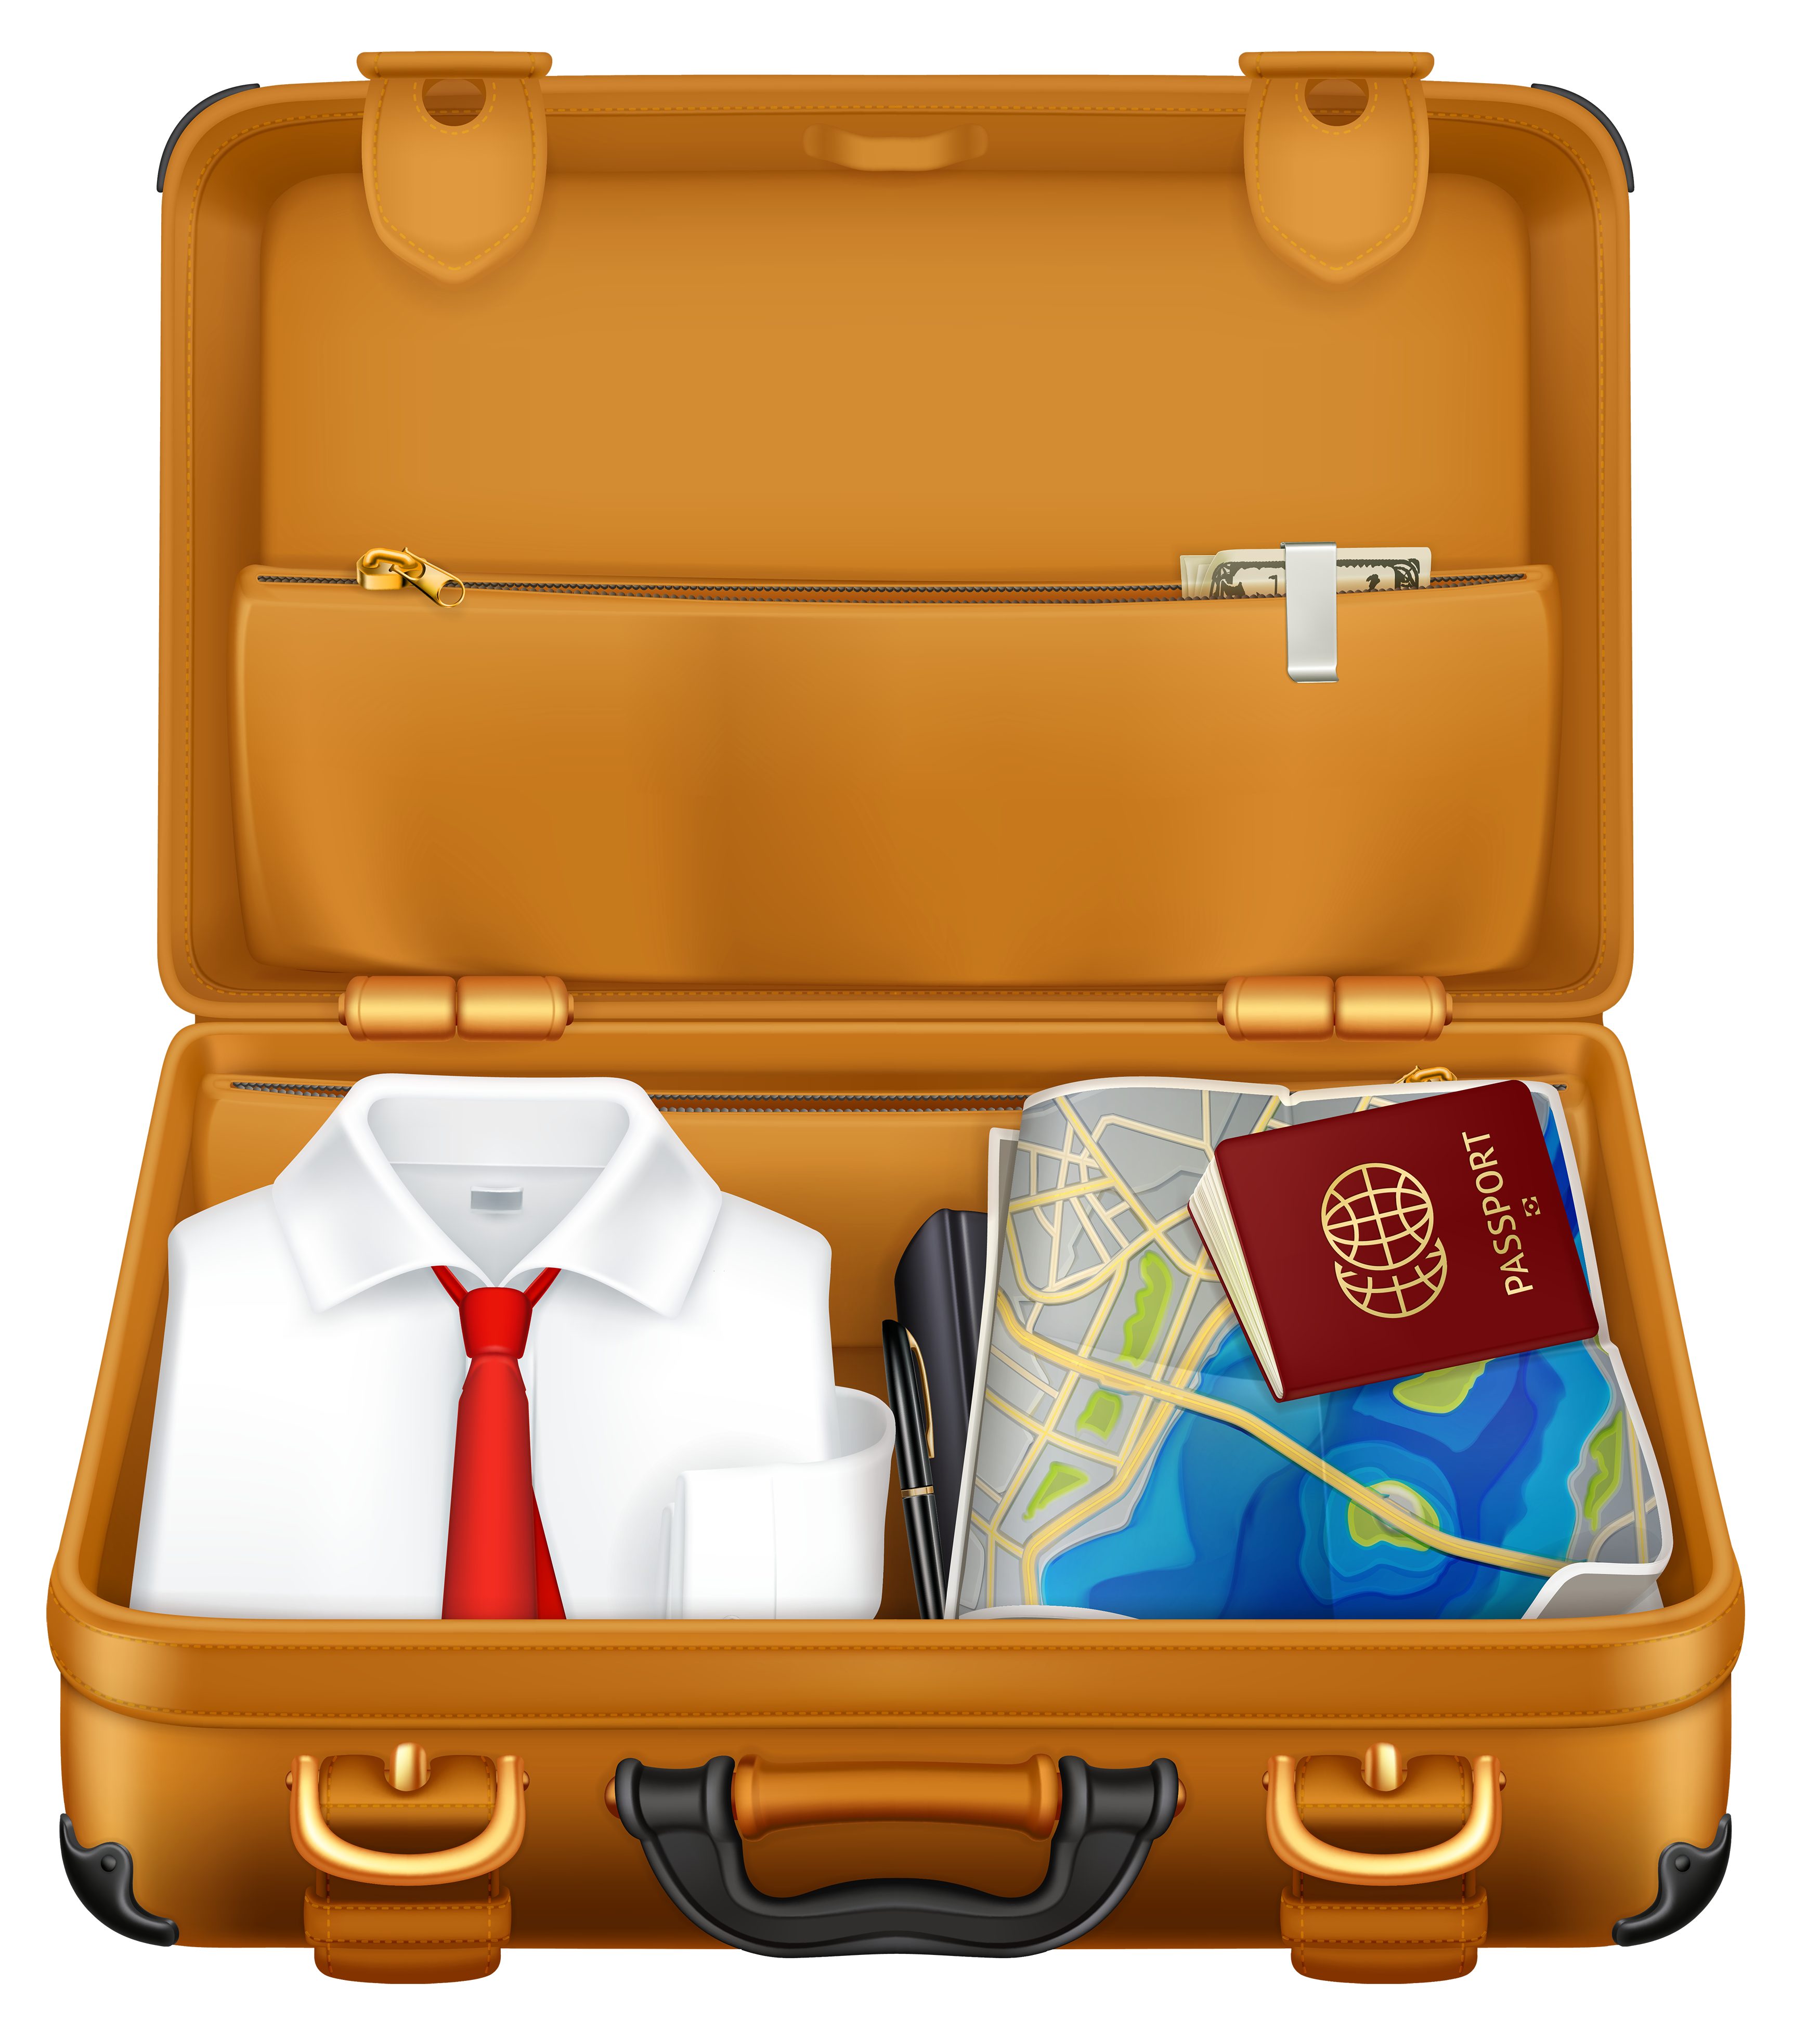 3500x3913 Brown Suitcase With Clothes And Passport Png Clipart Image